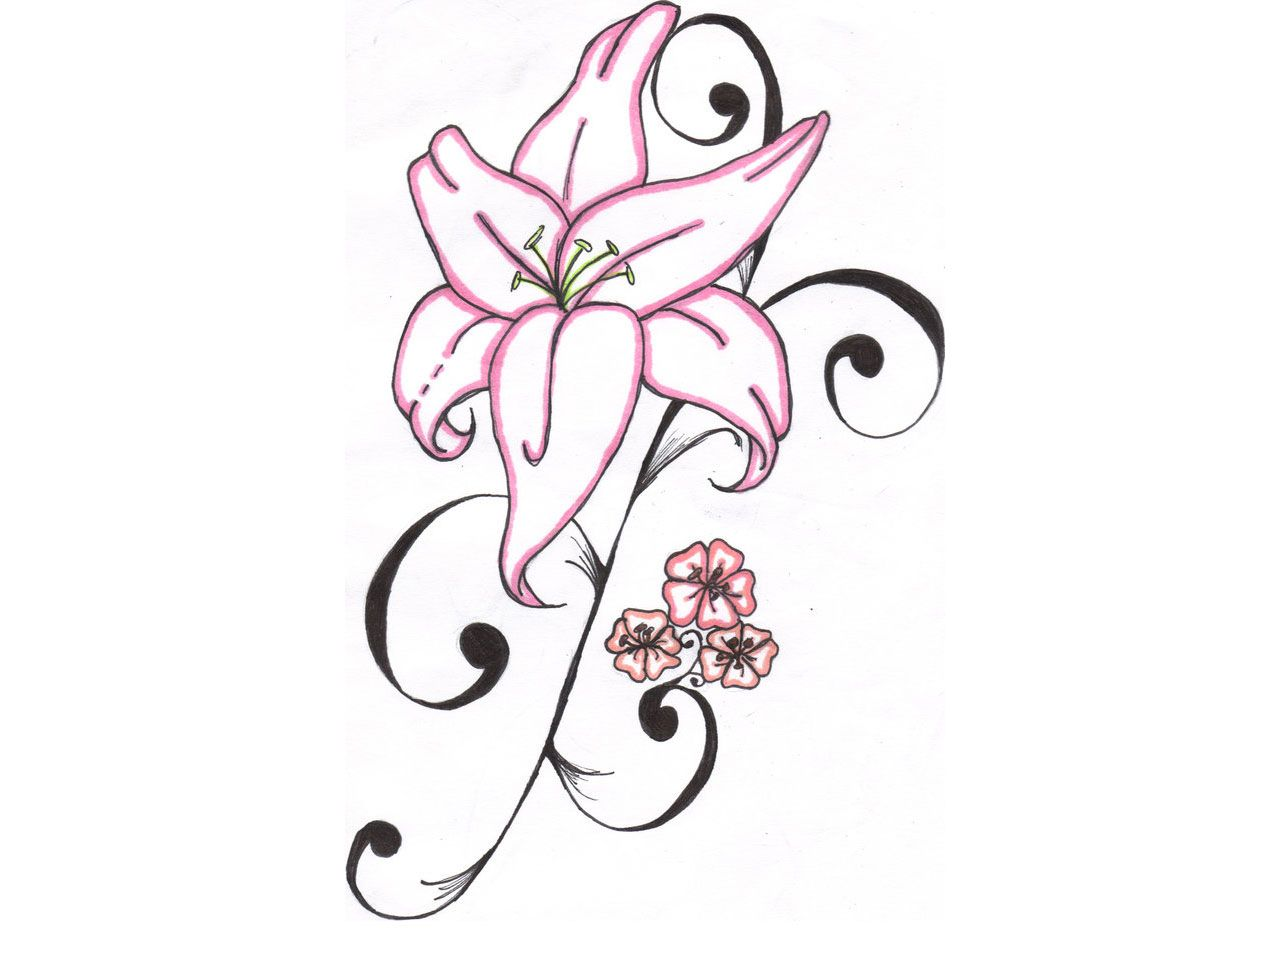 Pink lily httptattoo wallpapers hennas body art pink lily httptattoo wallpapers izmirmasajfo Choice Image